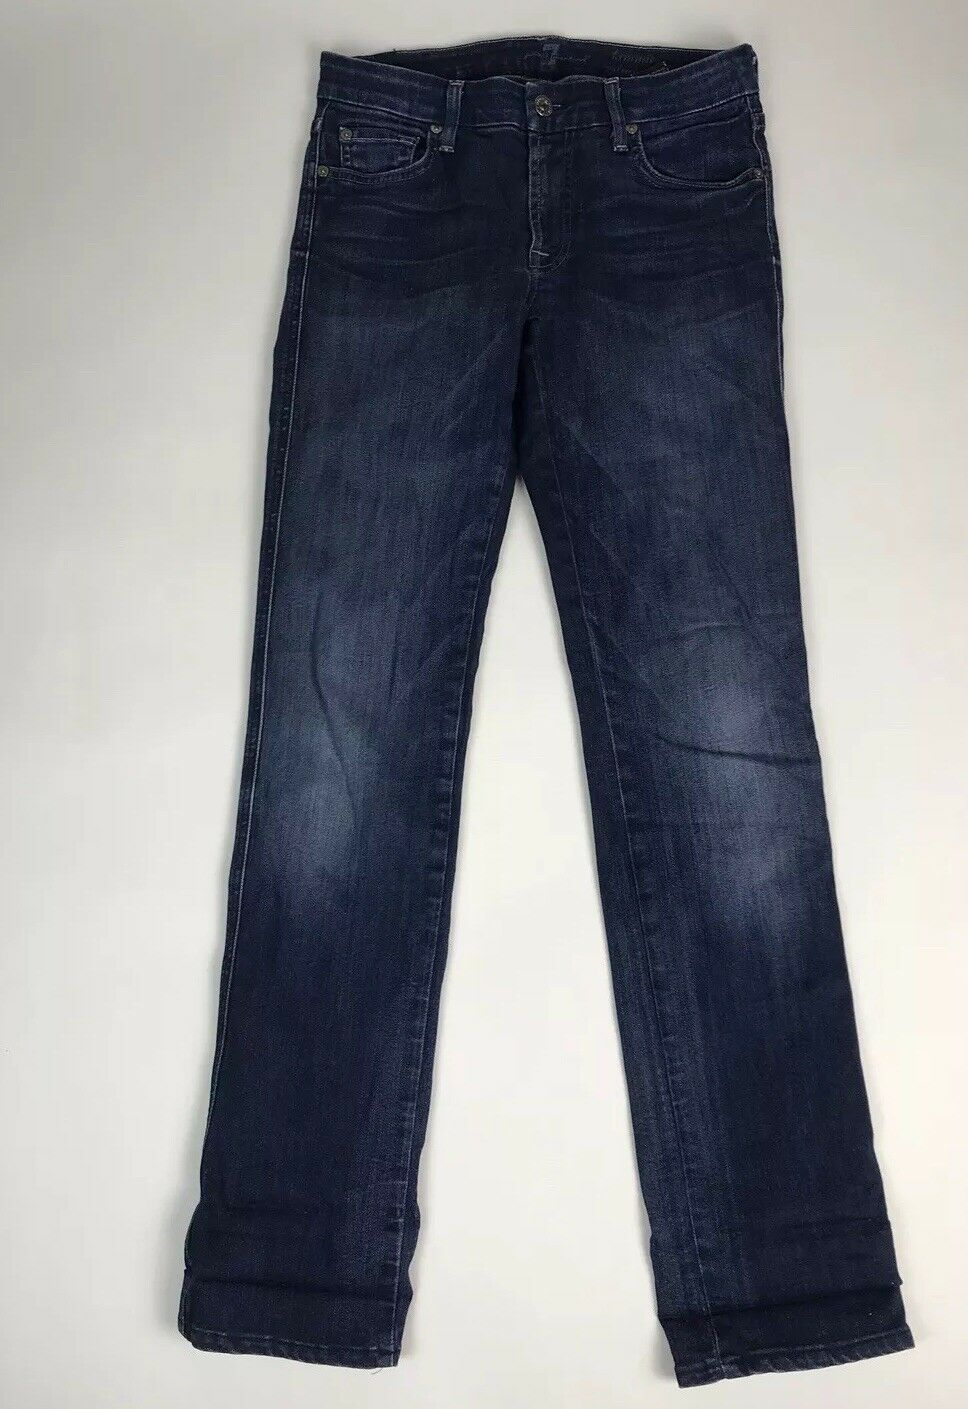 7 For All Mankind 27 Women's Kimmie Straight Leg Jeans Cotton Denim Pants Taper